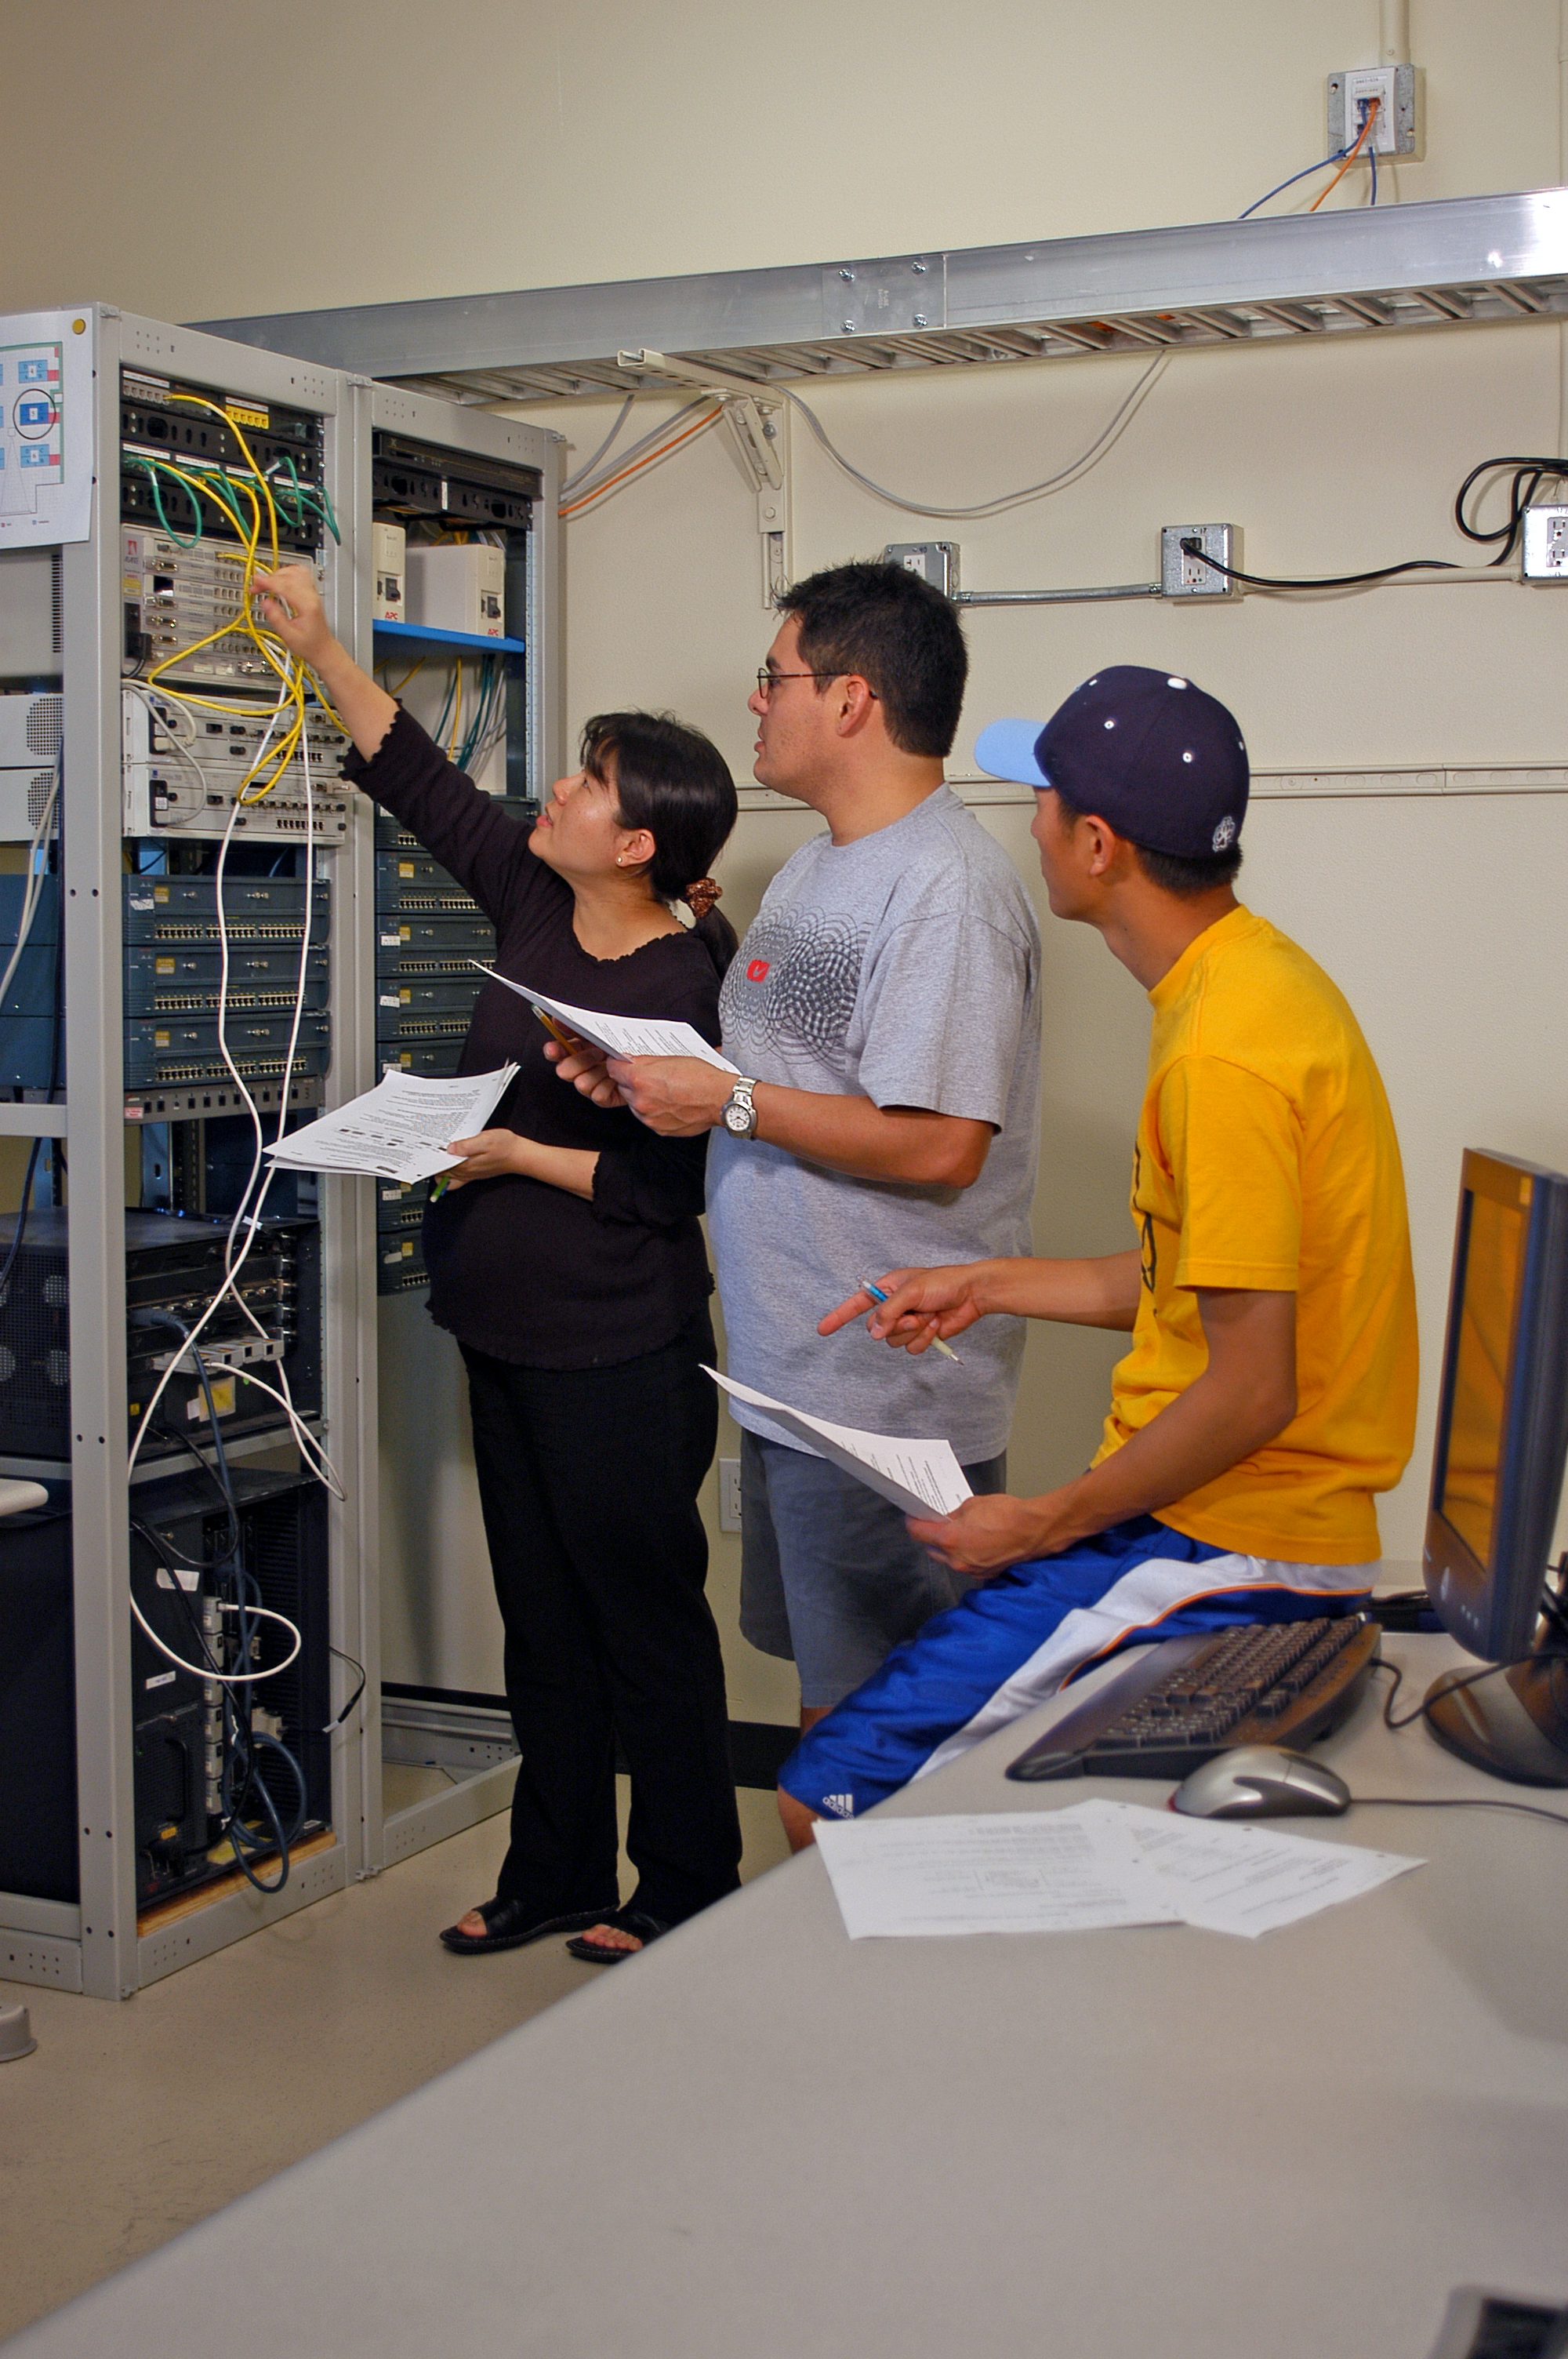 Graduate students working in the engineering lab